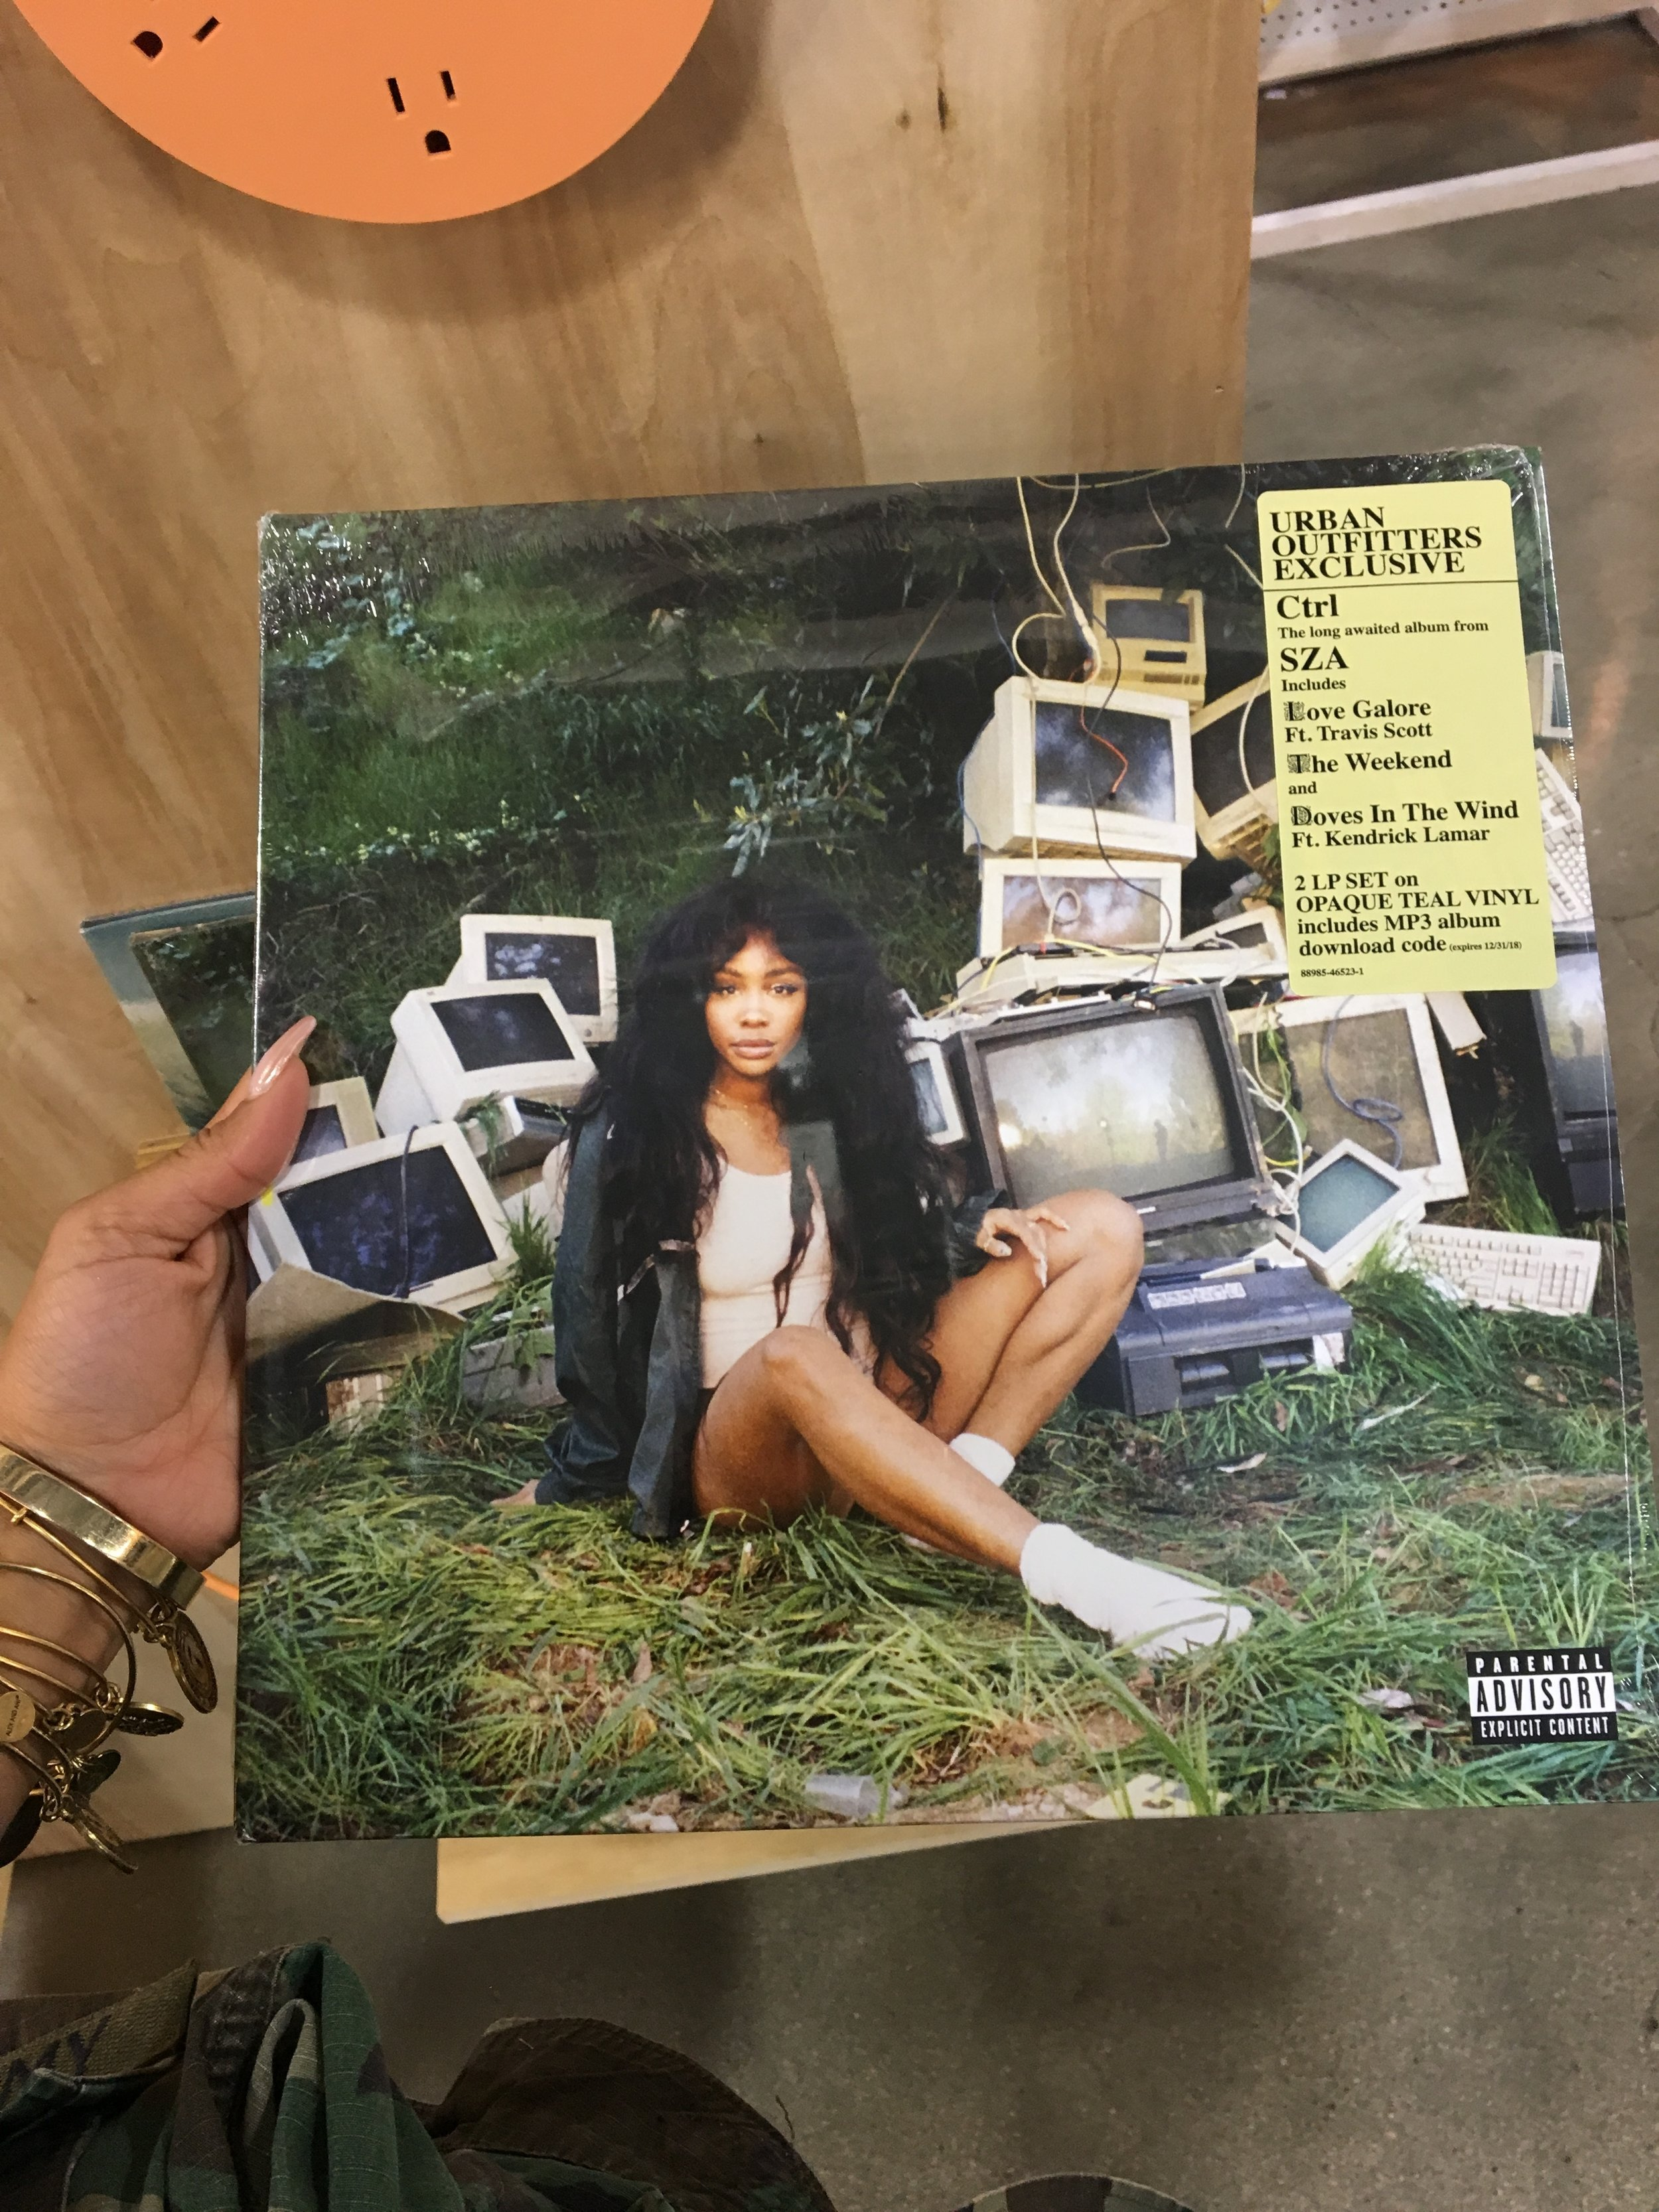 My first night in LV of course involved shopping. Although I didn't buy anything major, I made a stop in Urban Outfitter and found these vinyls by Sza (my fave) and Beyonce (MUVA). Of course, it wouldn't be me if I didn't have a crazy story to go with it. As we are in the mall, all alarms start sounding and people continue to walk casually. The person that I am starts searching social media for hashtags, looking at the location's Snapchat, everything. At this point, the alarms went off for about 10-15 minutes and loudly might I add with high-voltage bright lights. The shoe store I was closed their doors...with us still there, advising no one to leave. Come to find out, there was a shooting on the strip between two men who got into an altercation. One pulled a gun on the other and the man was taken to intensive care. Of course, we read about the article from the news and the associates who worked at the store begin to panic. Long story long, everyone within the mall was ok and me and my friends were able to leave. Talk about a first night to remember!